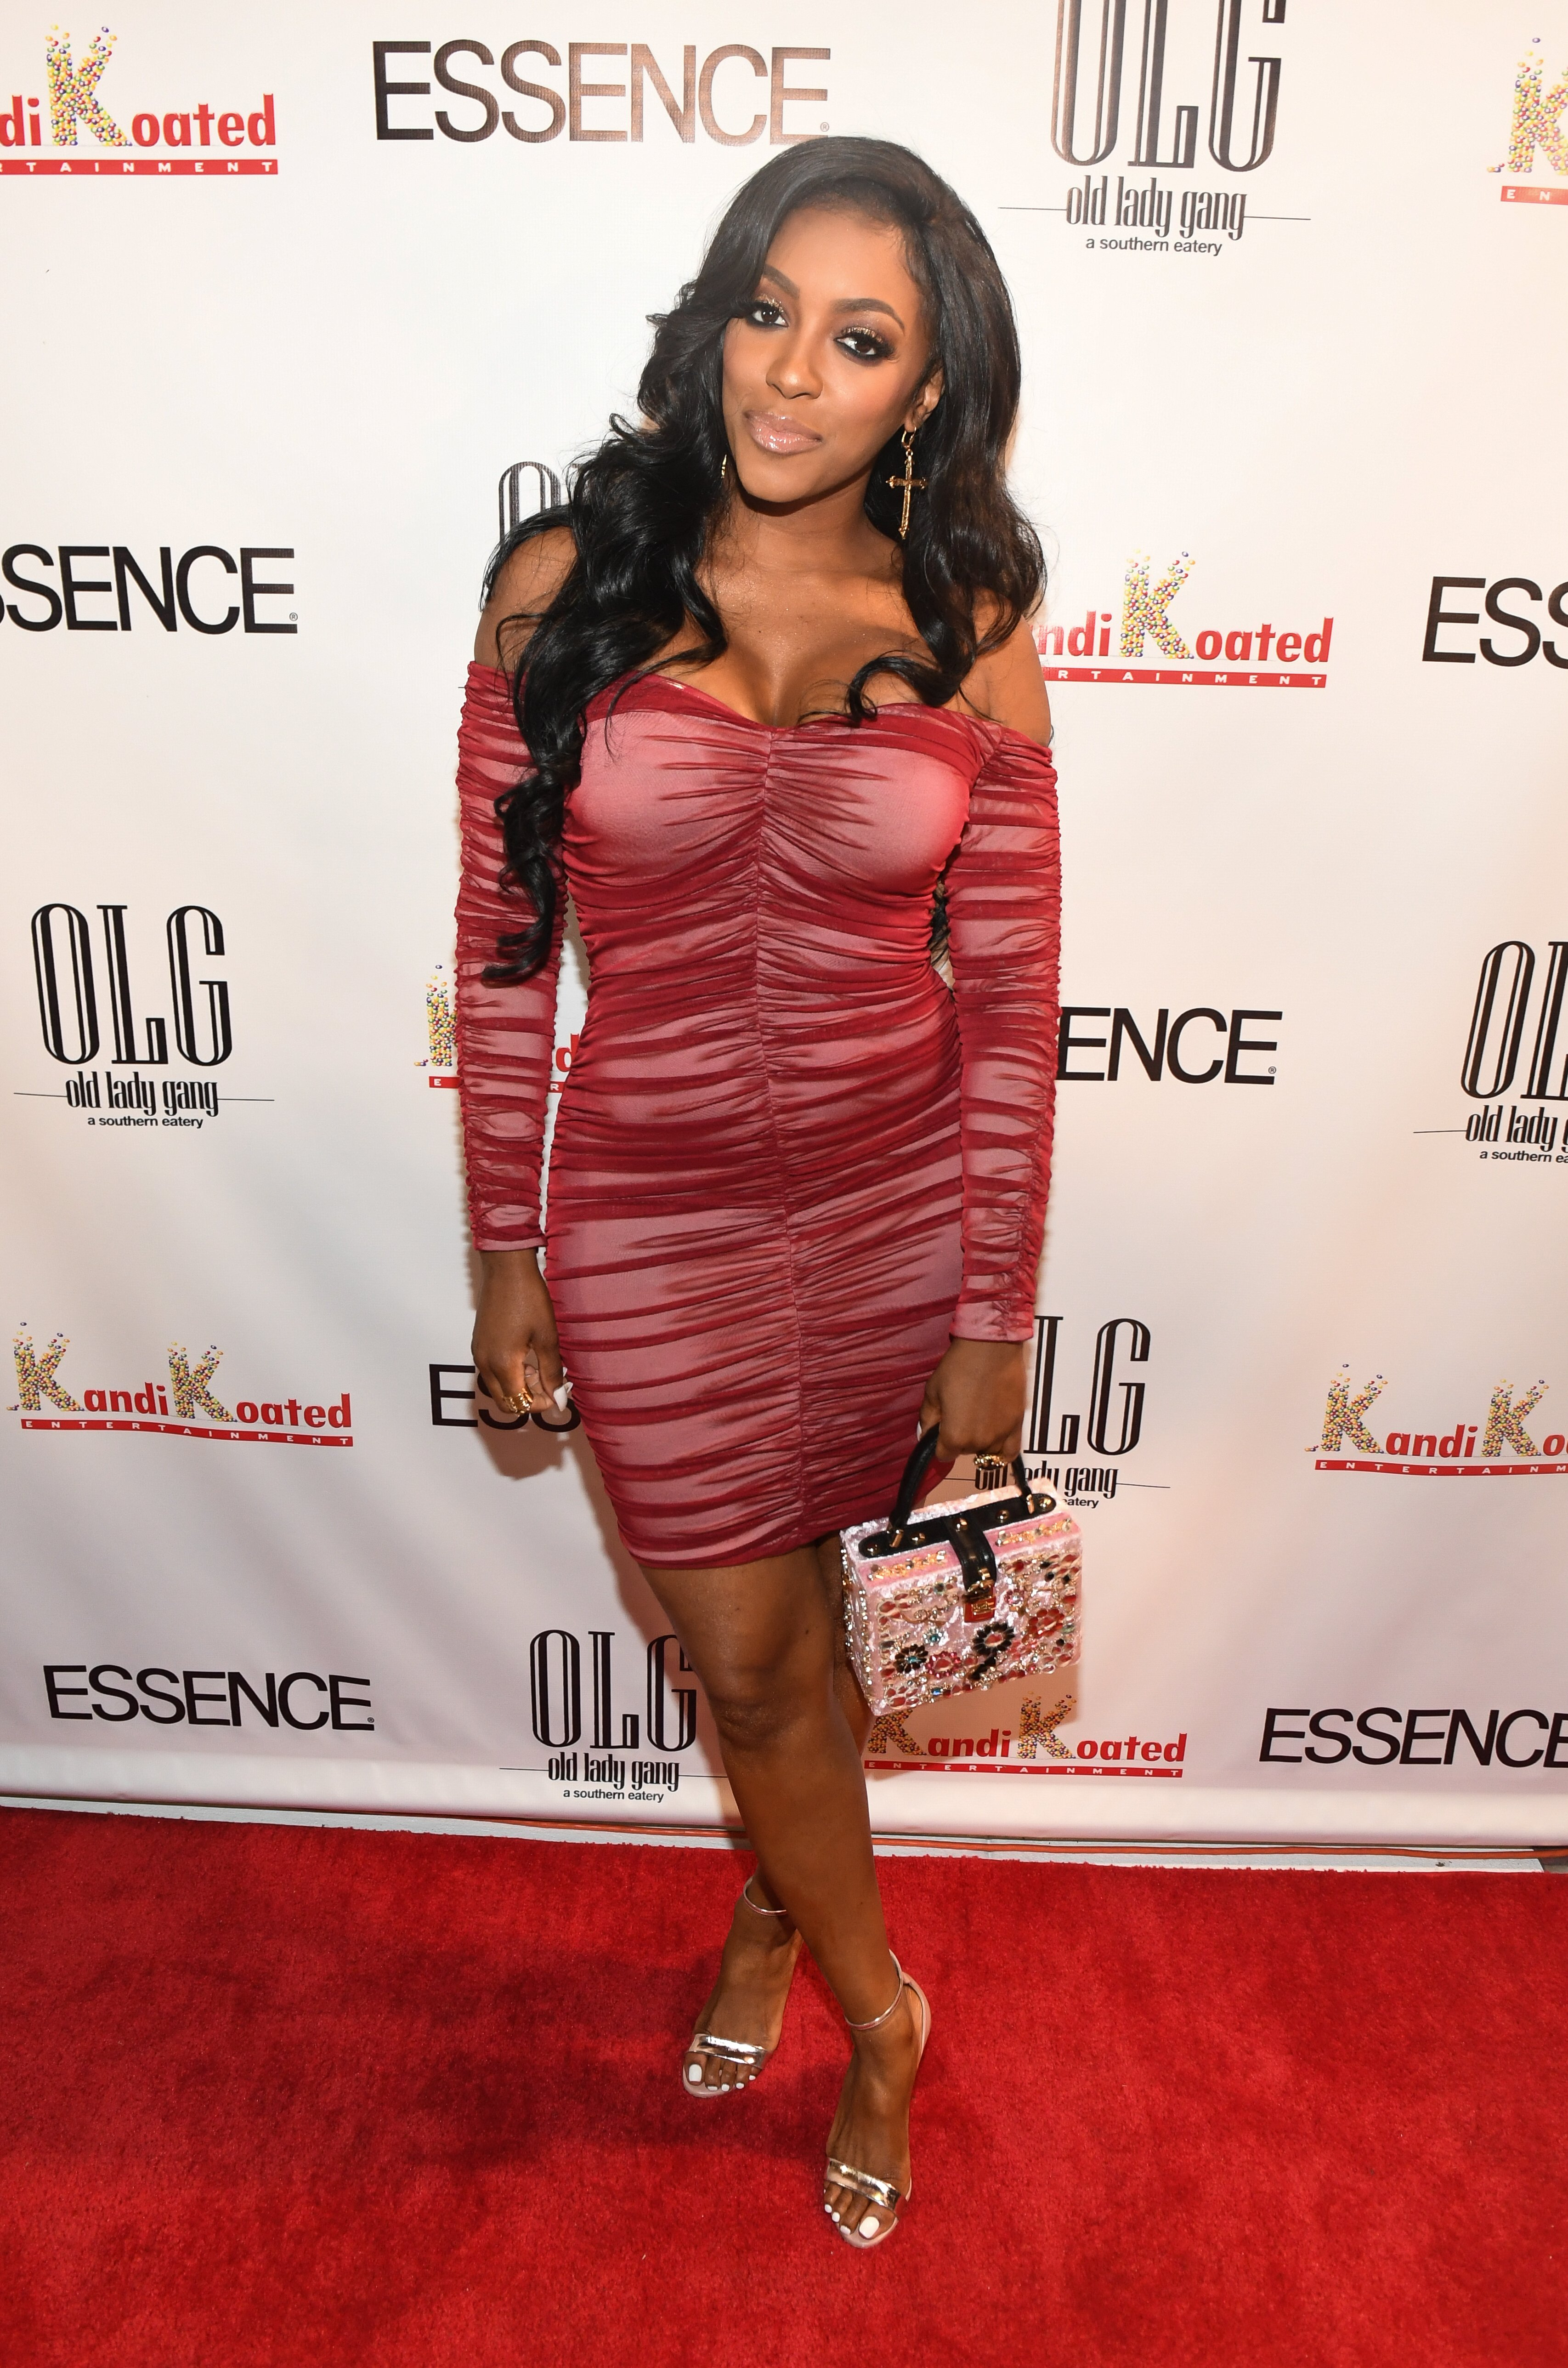 Porsha Williams at Essence Magazine's celebration of October cover star Kandi Burruss in Atlanta, Georgia, 2017 | Source: Getty Images